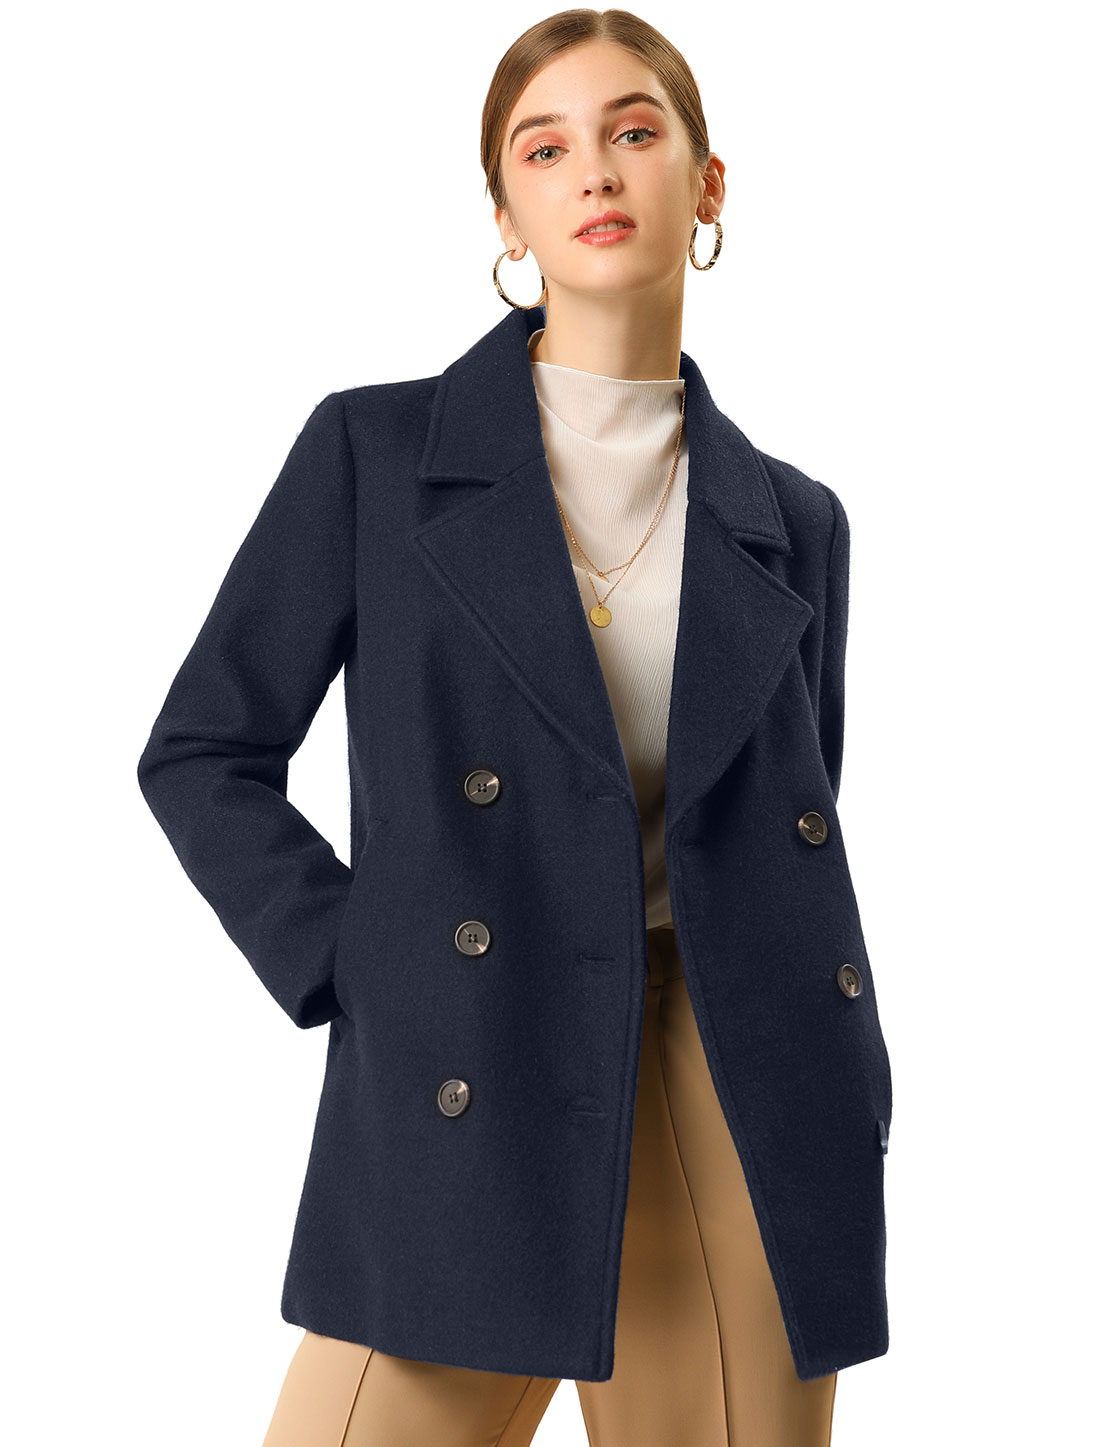 Women's Double Breast Notched Lapel Pocket Mid Thigh Felt Coat Dark Navy Blue M